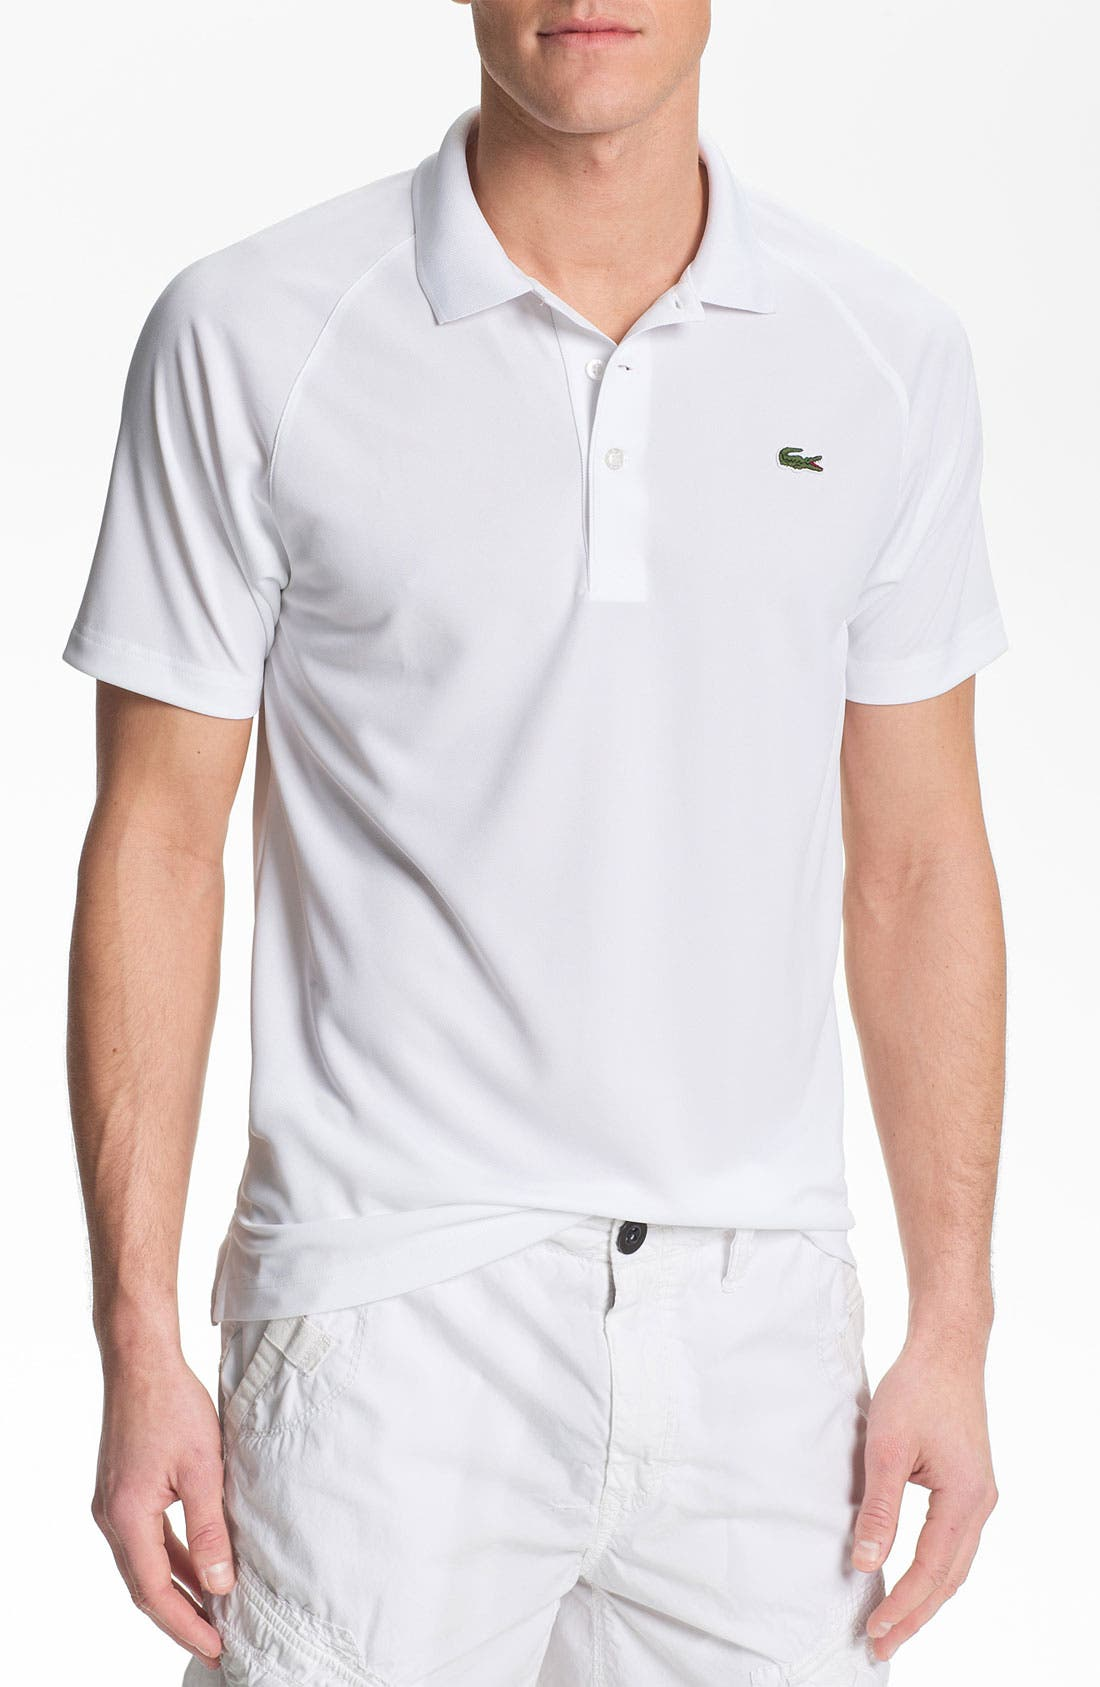 Main Image - Lacoste 'Super Dry' Dri-FIT Polo